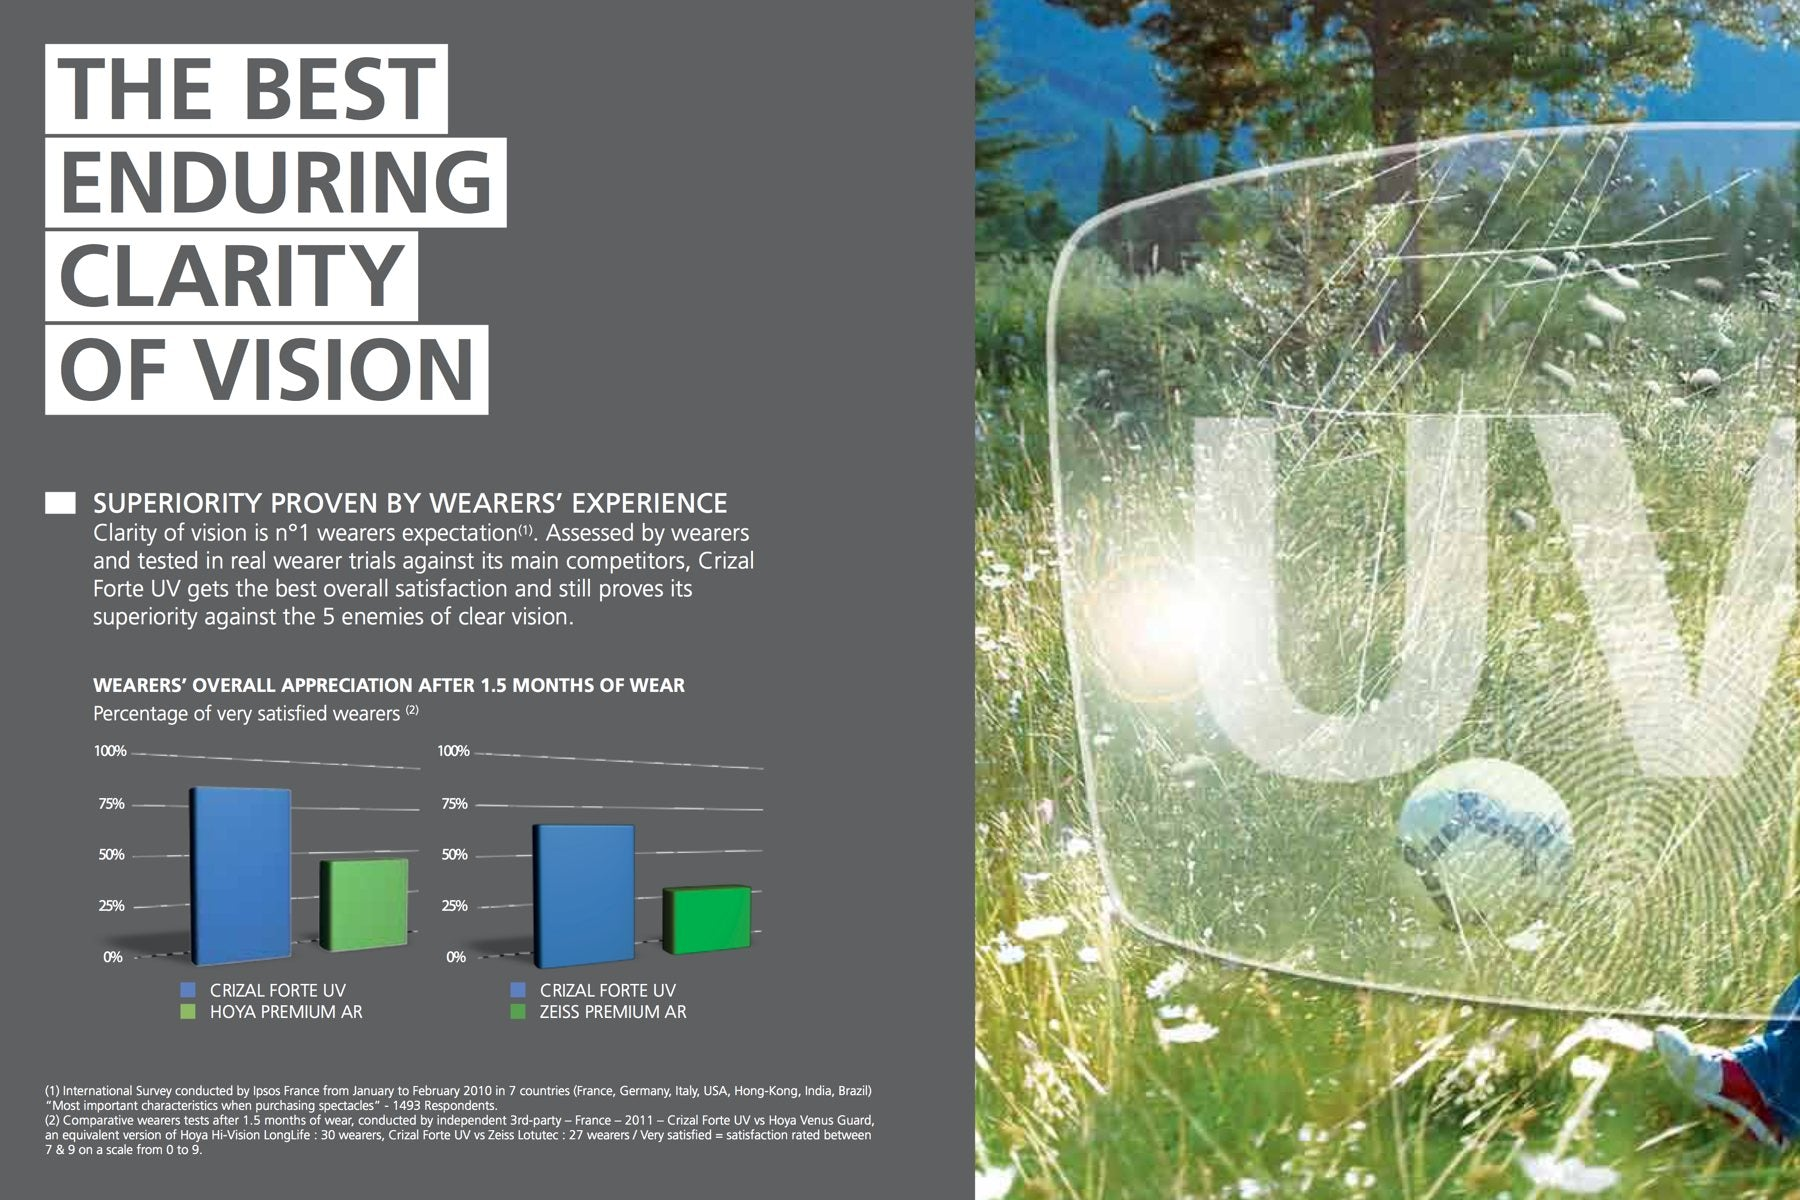 The Best Enduring Clarity of Vision - Crizal® Forte UV Lenses